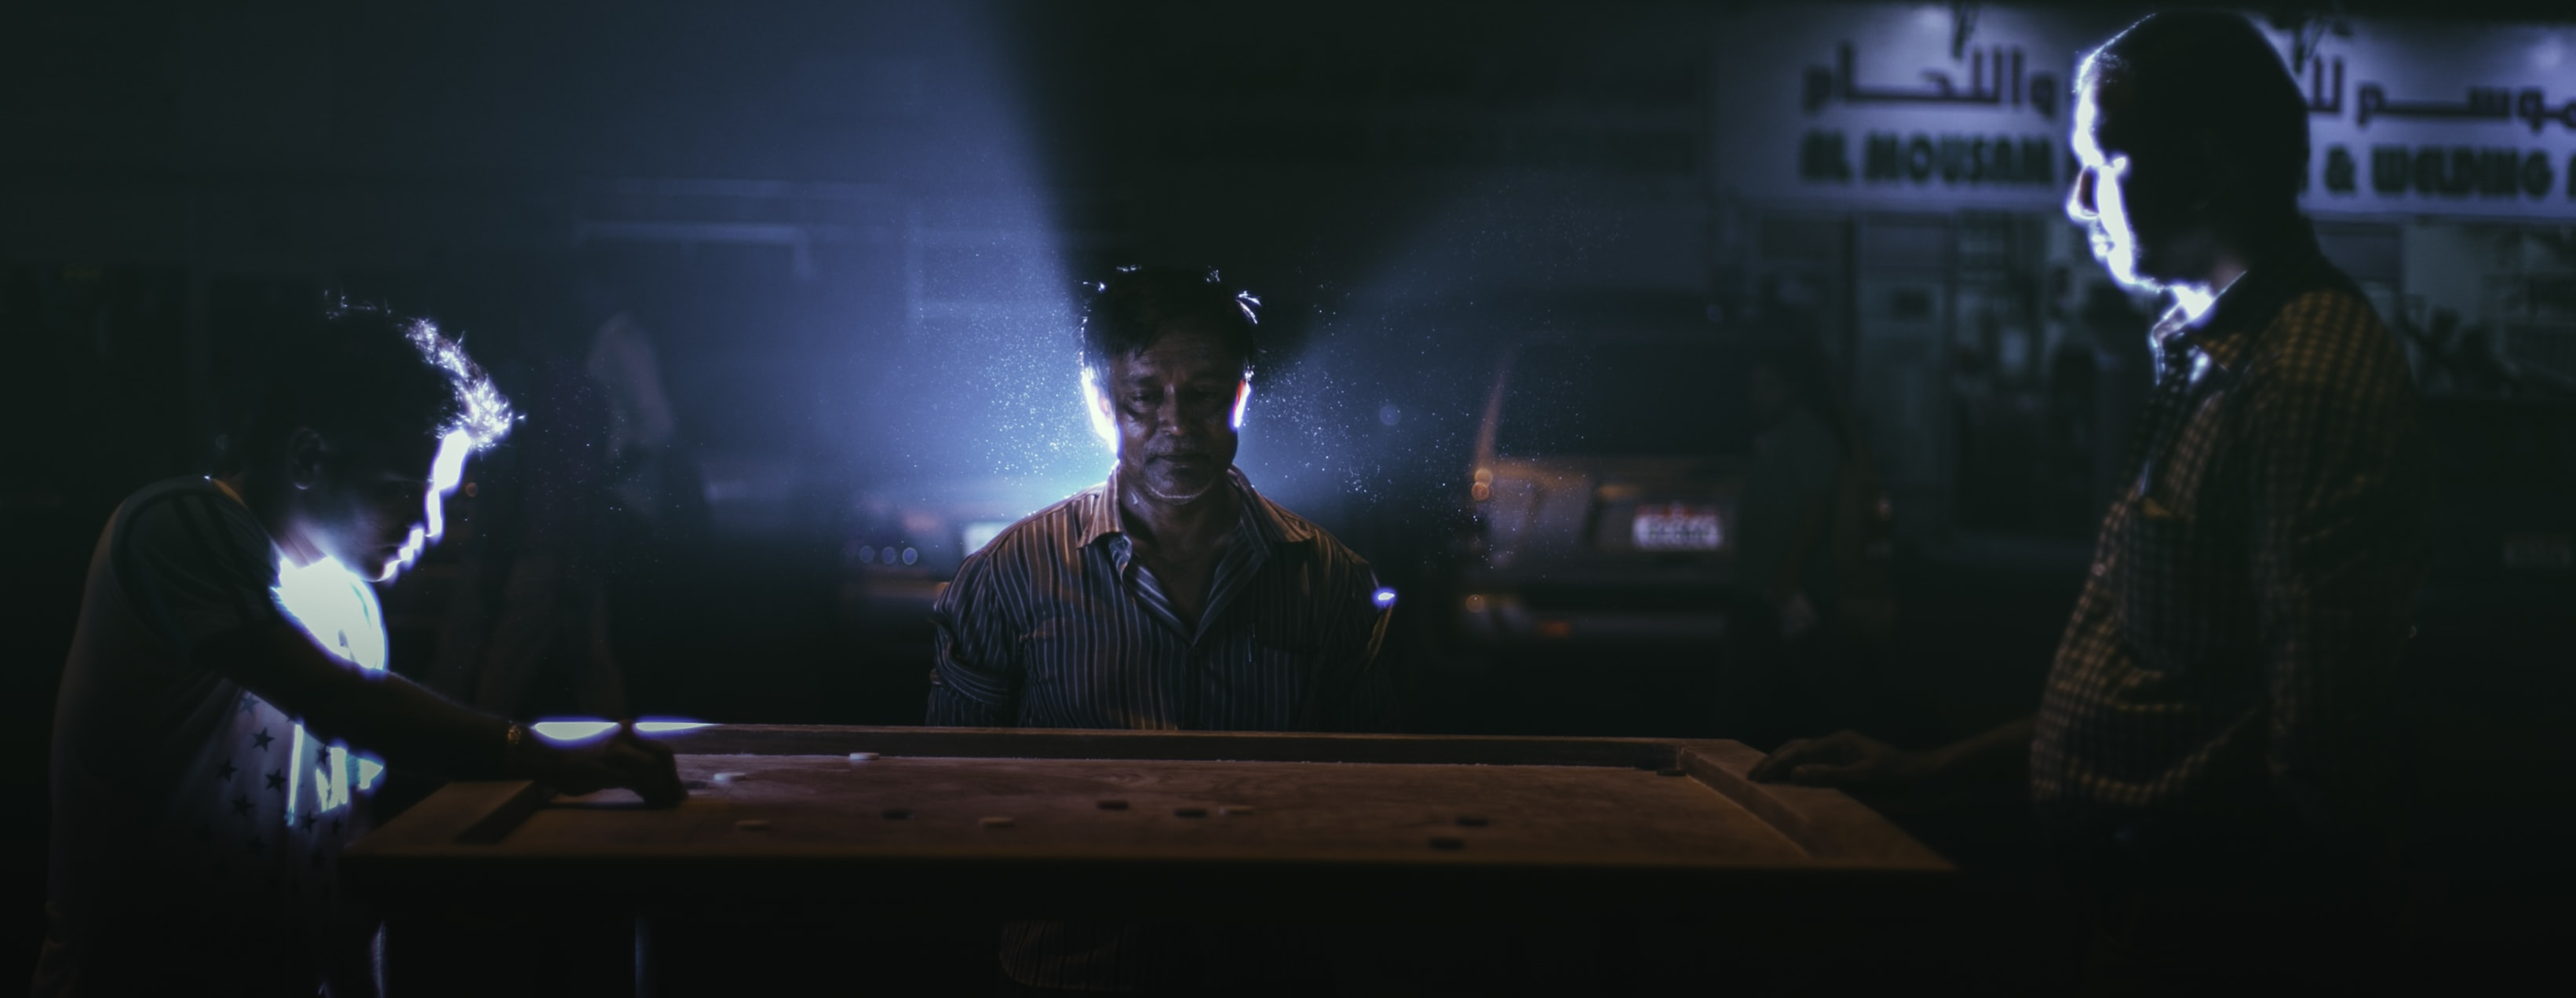 man standing on side of table film still